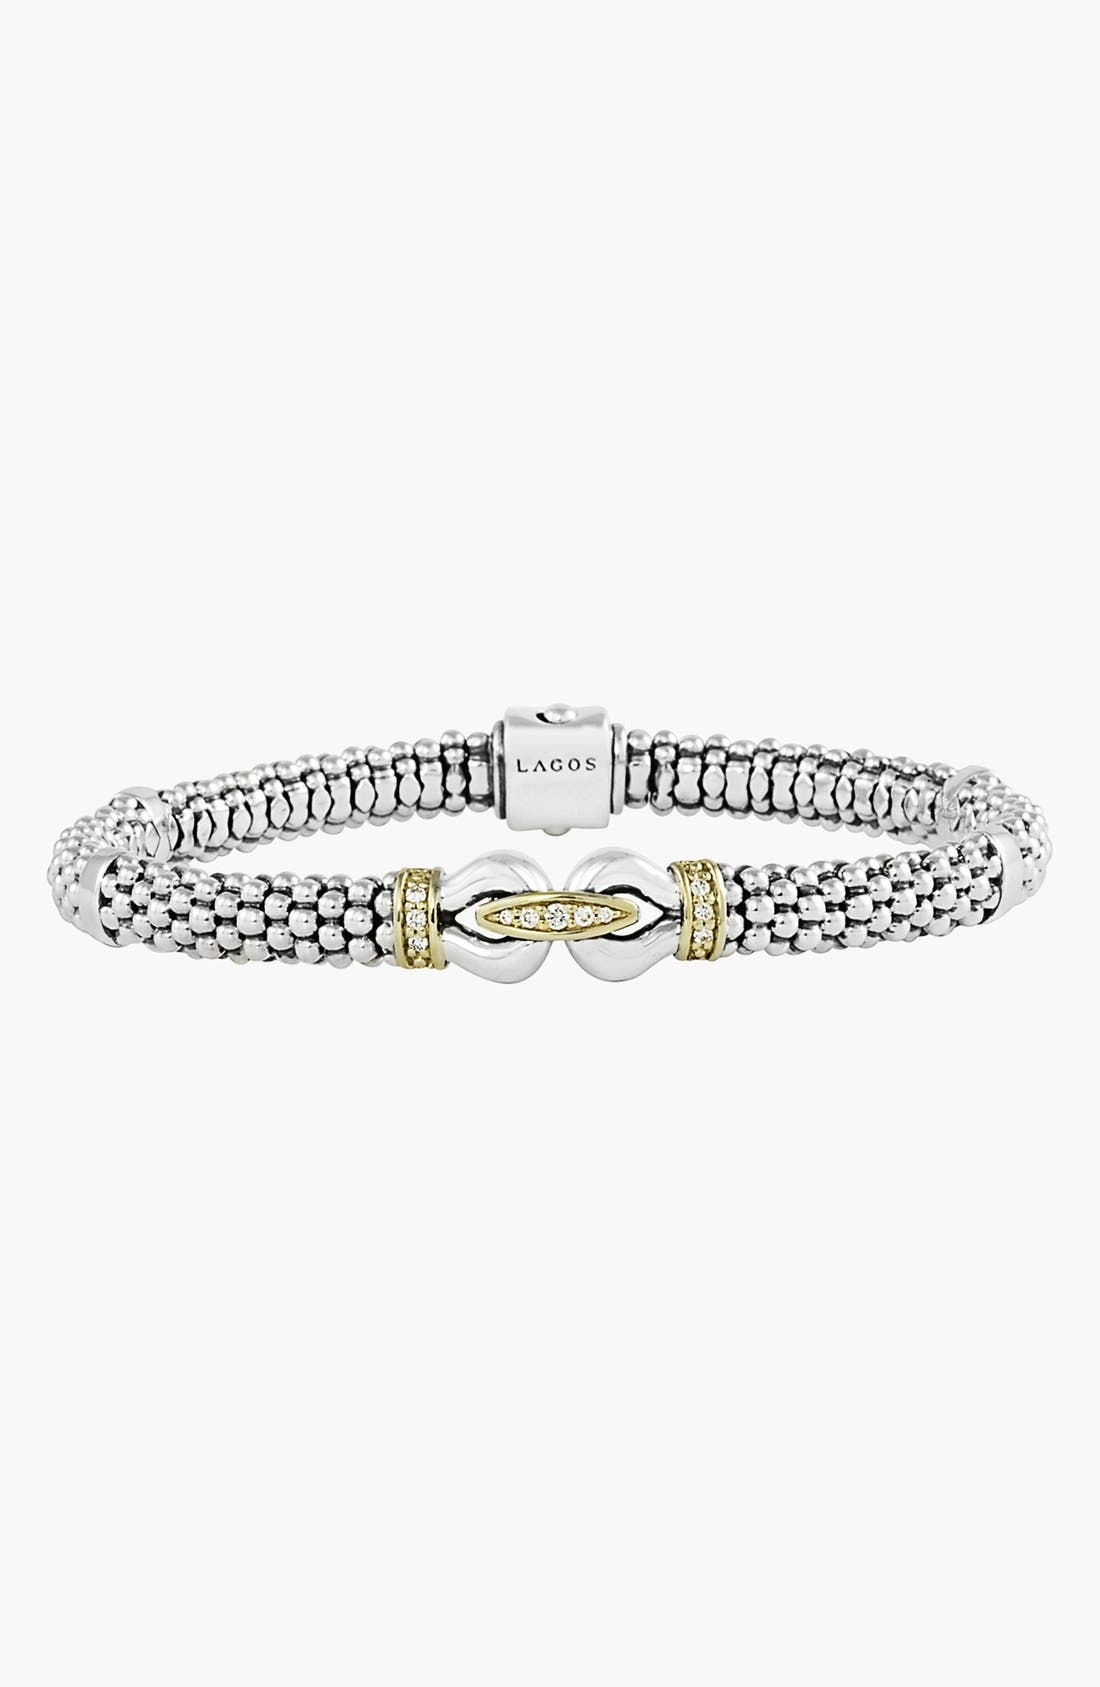 Main Image - LAGOS 'Derby' Diamond Buckle Two Tone Rope Bracelet